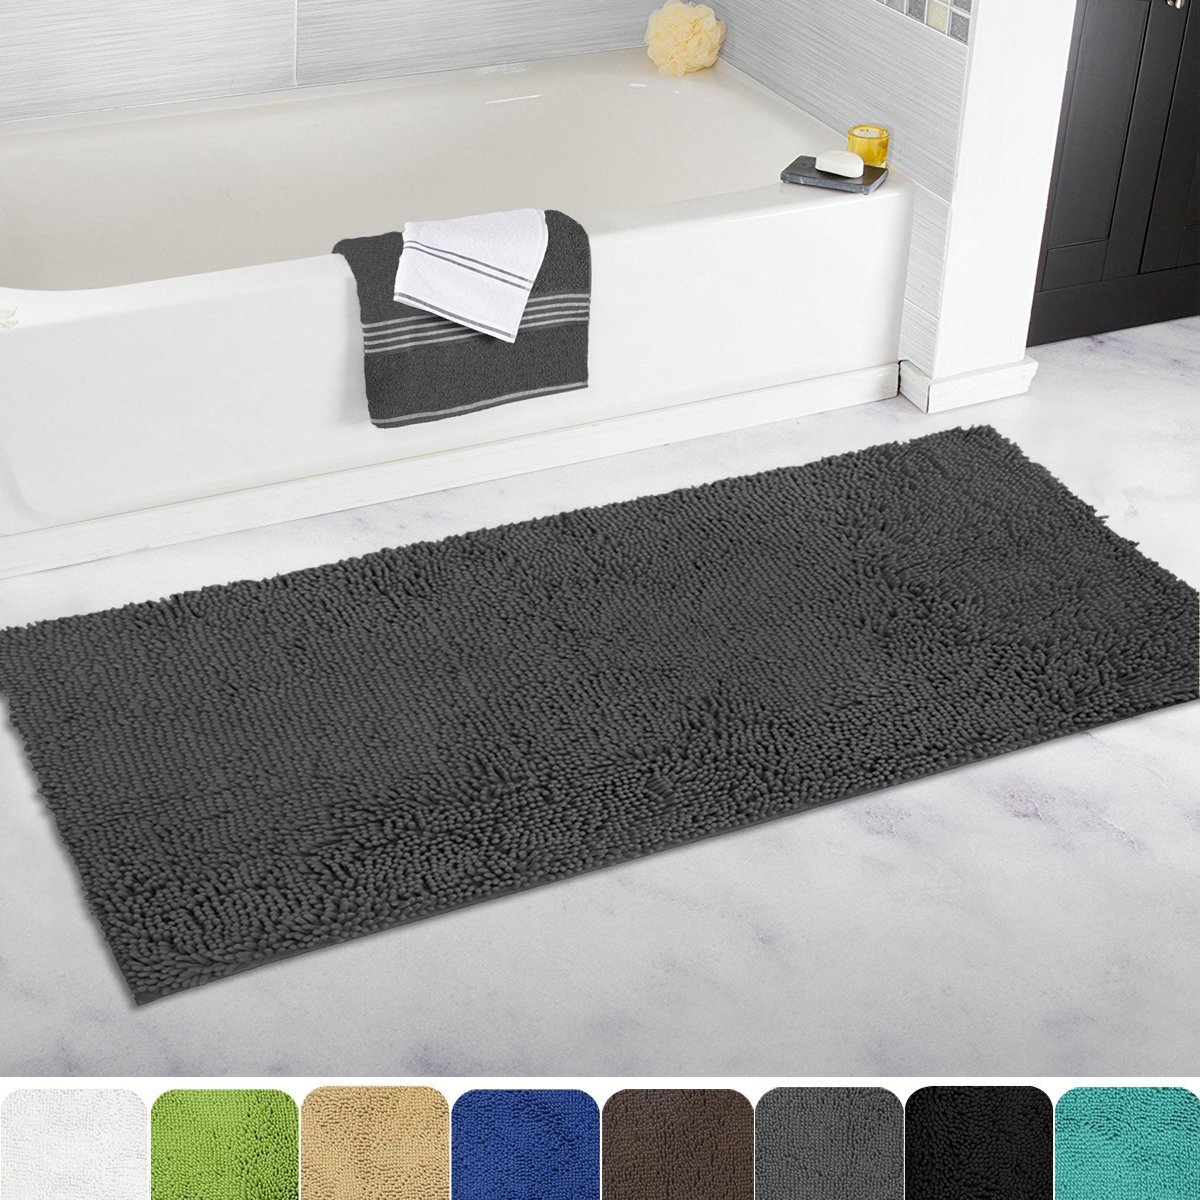 MAYSHINE Bath mat Runners for bathroom rugs,Long floor mats,Extra Soft, Absorbent, thickening Shaggy Microfiber,Machine-Washable, Perfect for Doormats,Tub, Shower(27.5X47 inch Dark Gray) by MAYSHINE